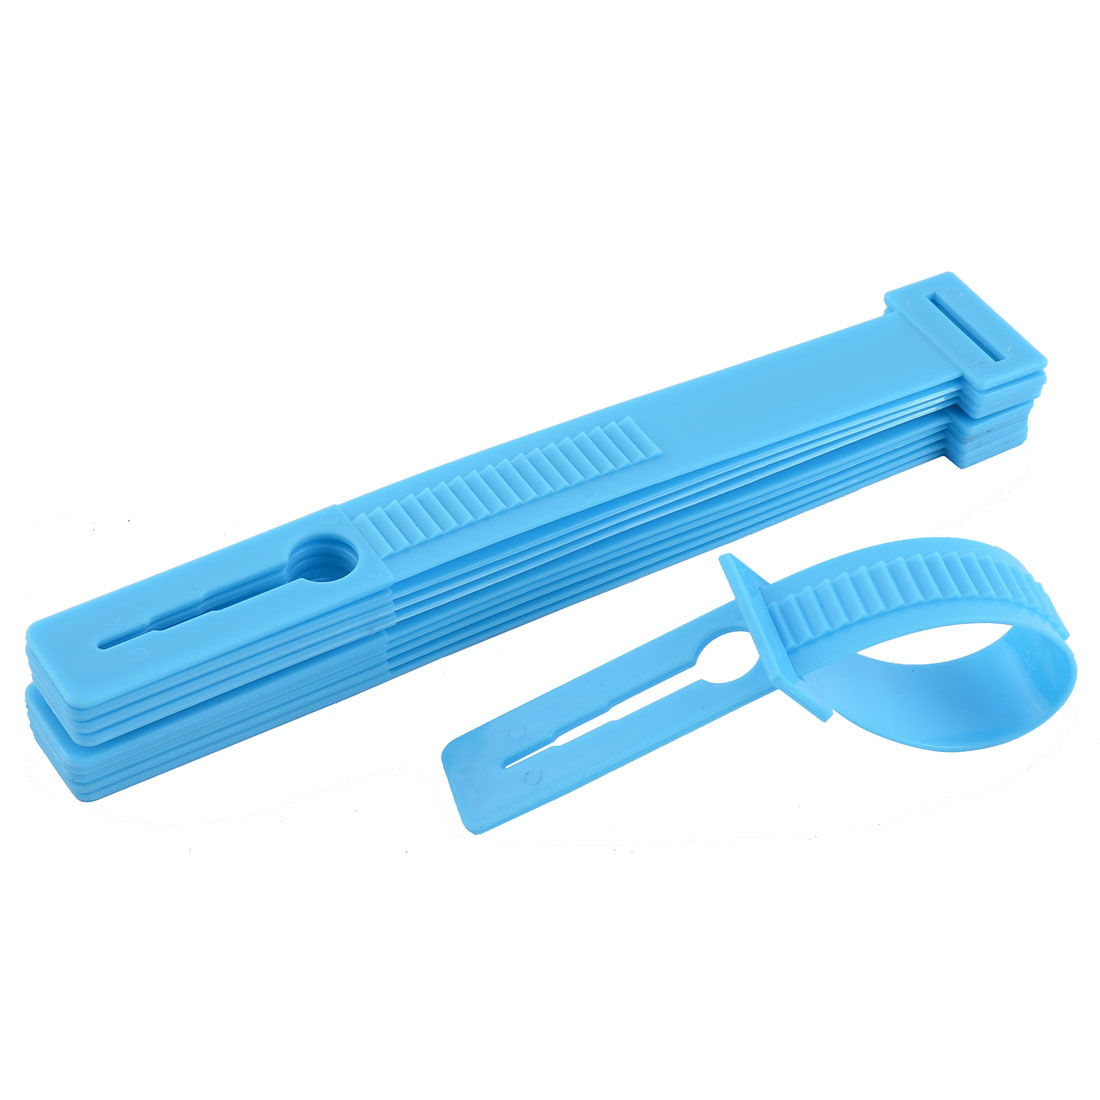 Household Plastic Windproof Clothesline Pole Clothes Hanger Lock Buckle Blue 10 Pcs